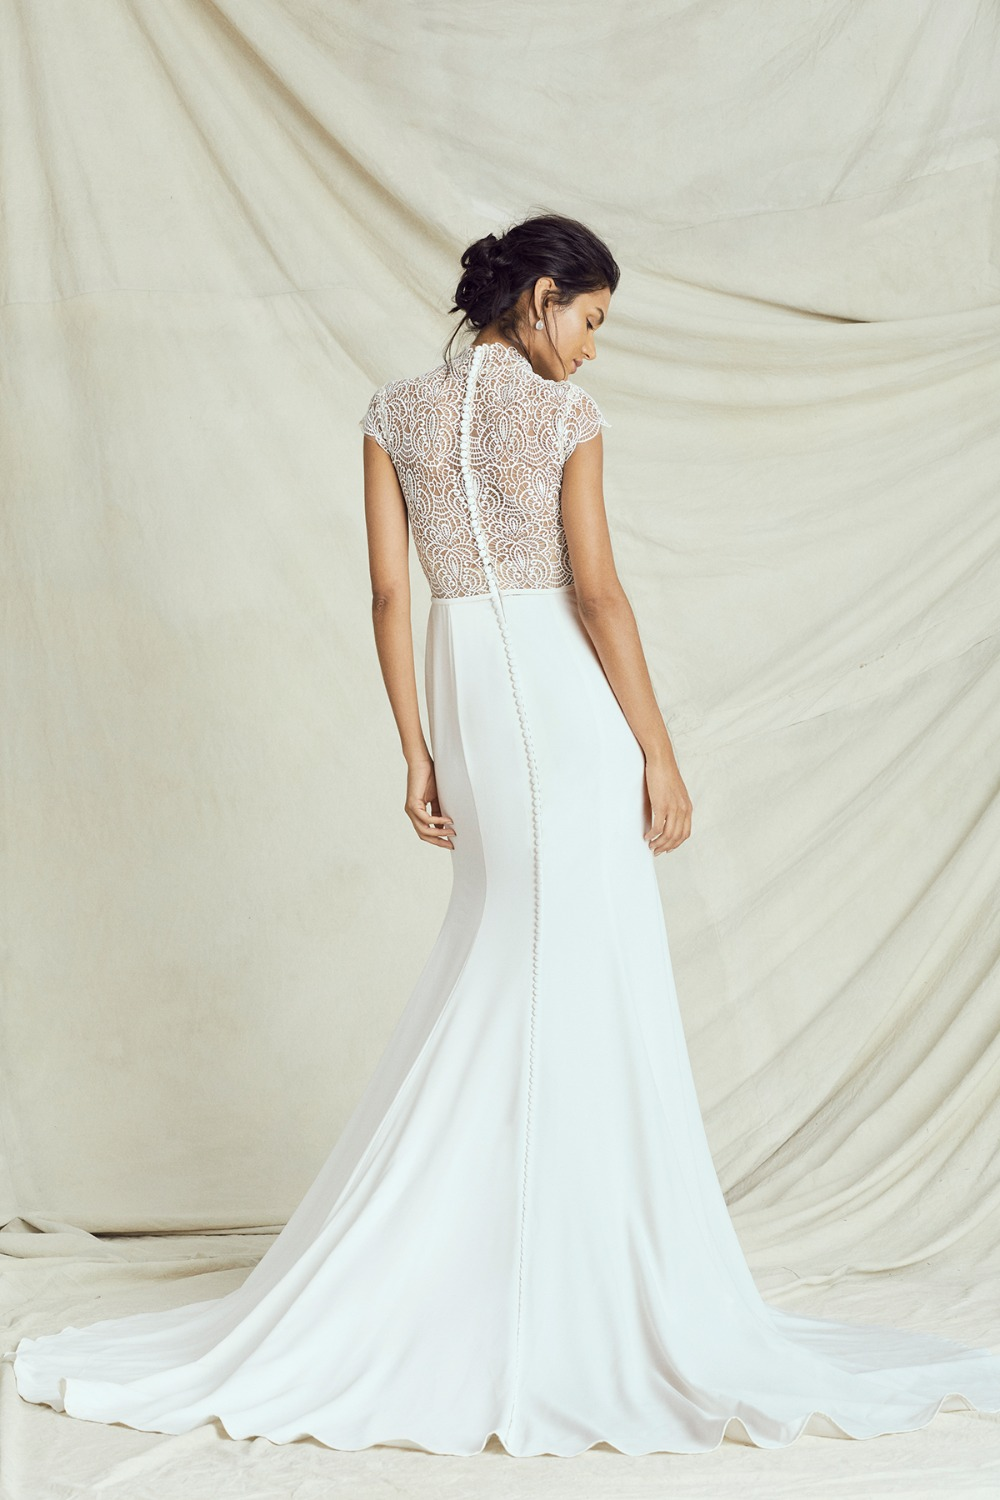 elegant laser cut top gown by Kelly Faetanini